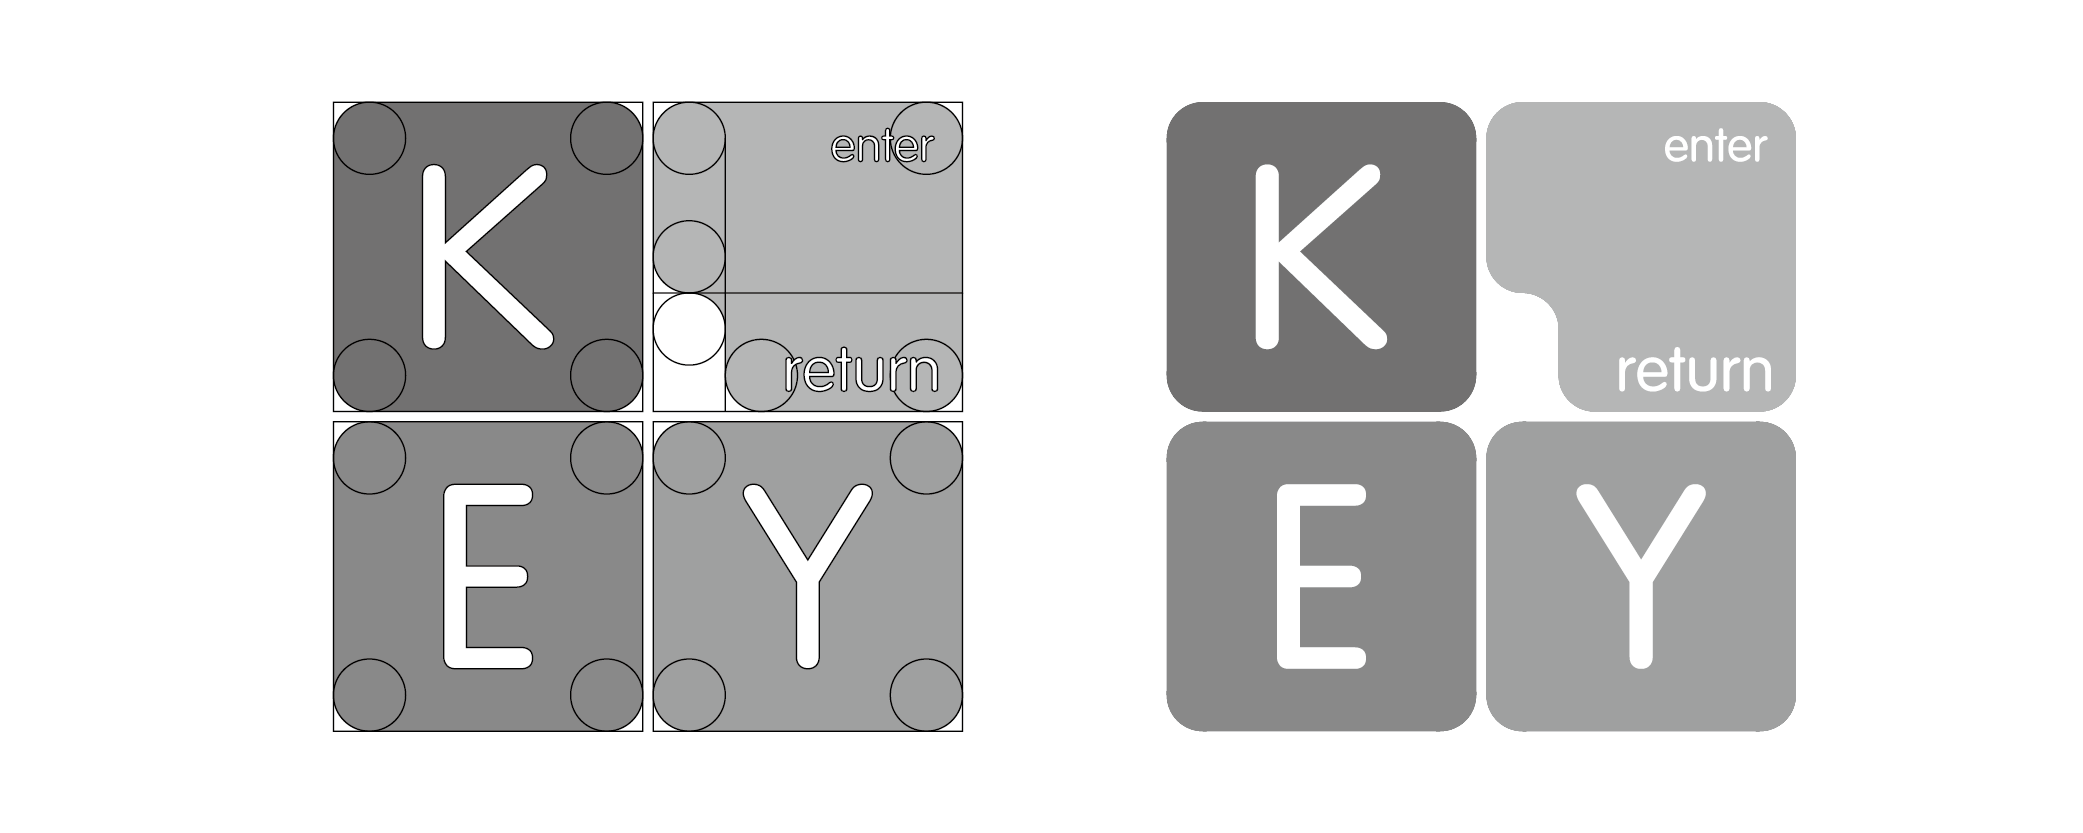 LOGO No.6 / keyboard